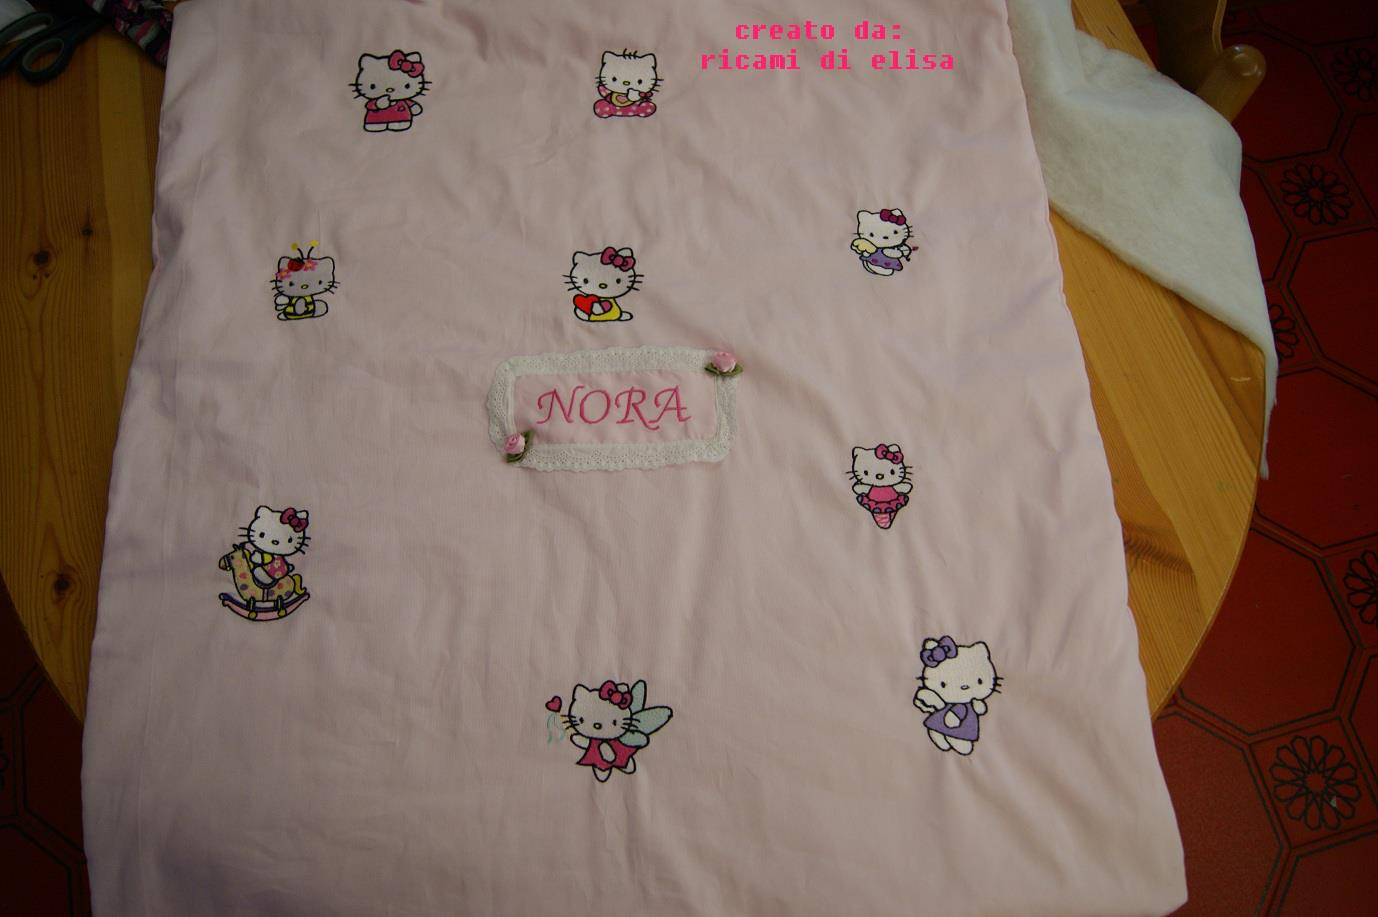 Embroidered Hello Kitty design on blanket